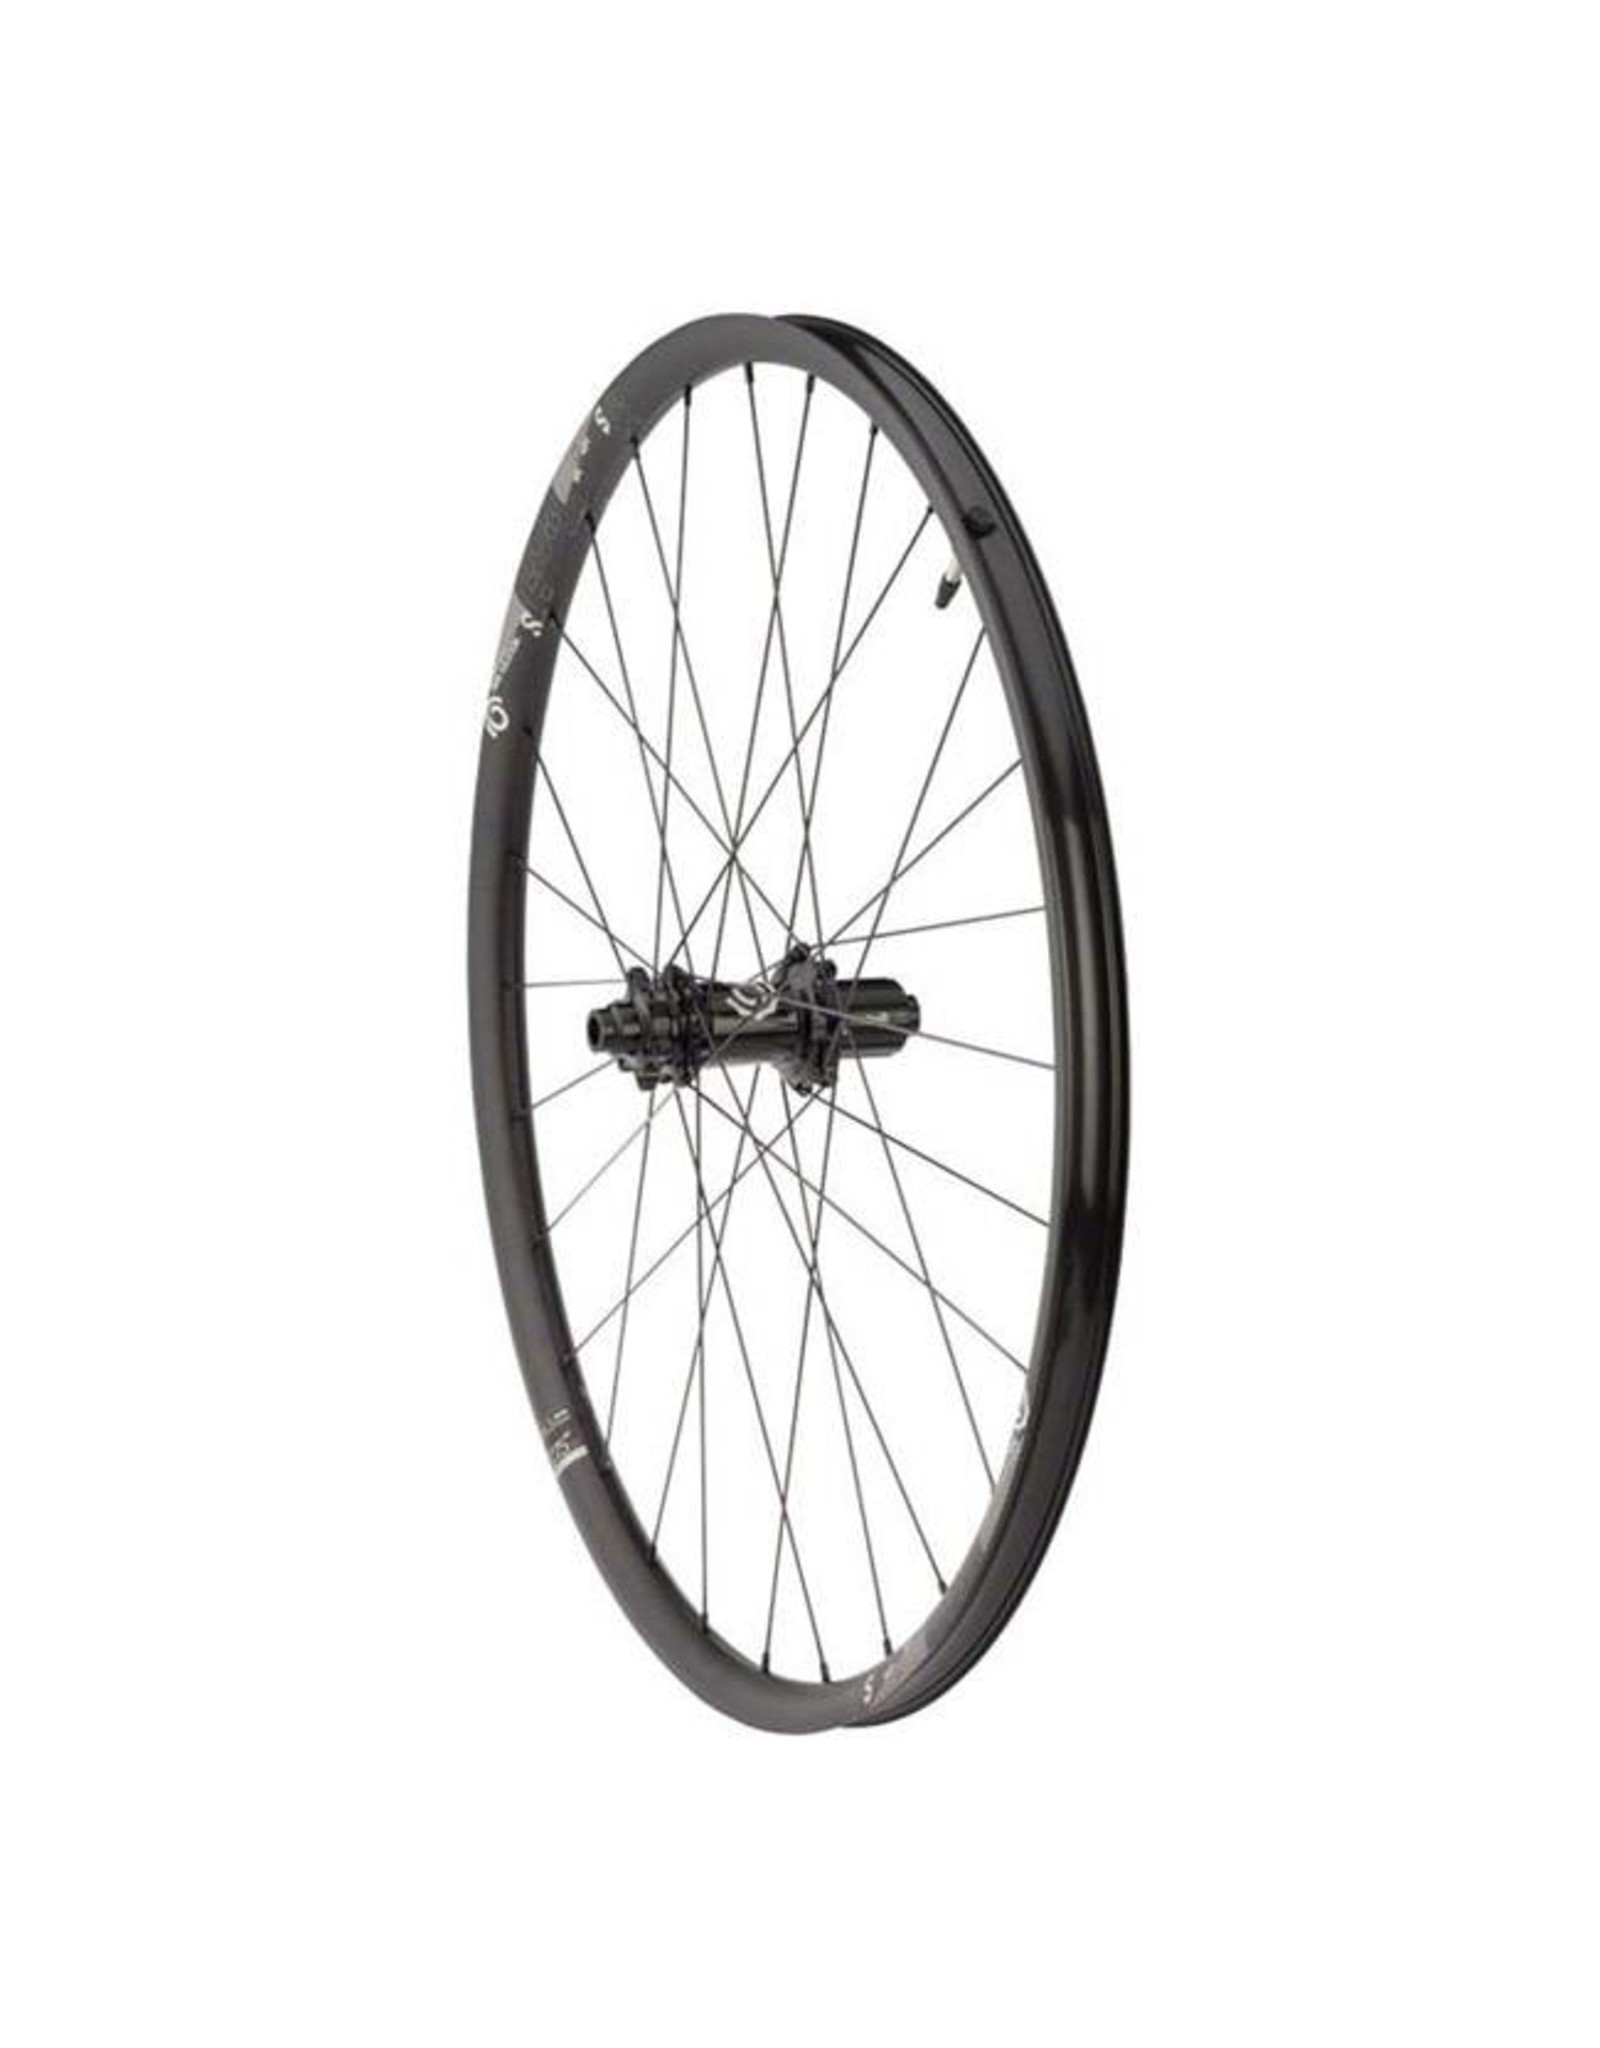 "Industry Nine Industry Nine Trail S Wheelset: 27.5"", 15 x 110mm Thru Axle Boost Front, 12 x 148mm Boost Thru Axle Rear, Shimano HG Freehub, Black"